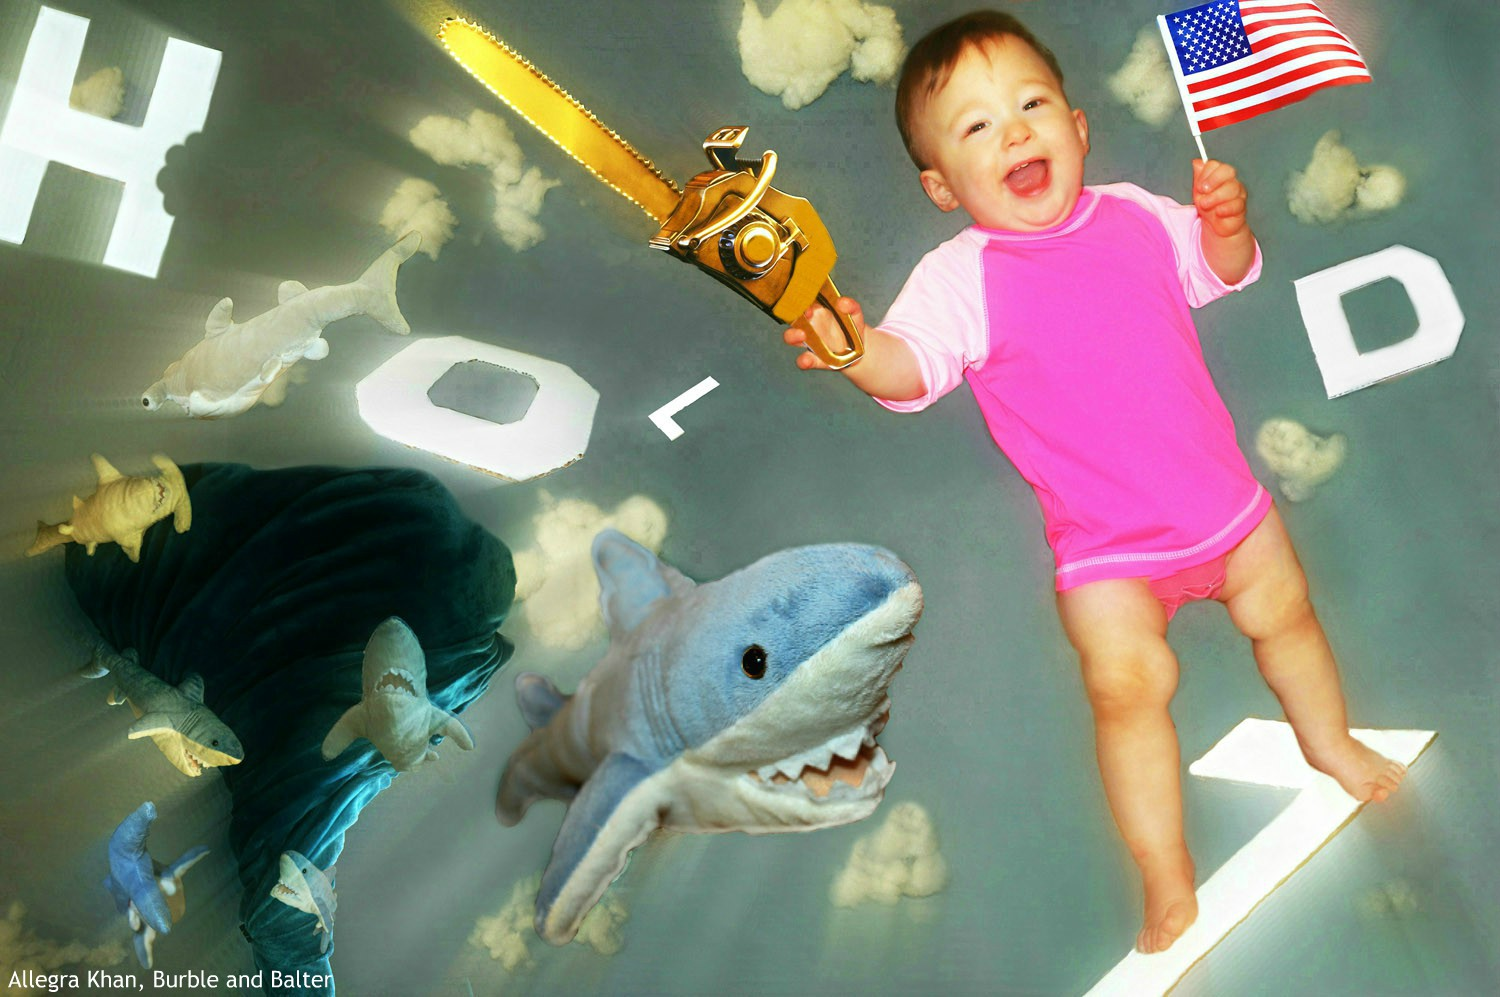 Sharknado-Baby-Photoshoot-2-Burble-and-Balter.jpg